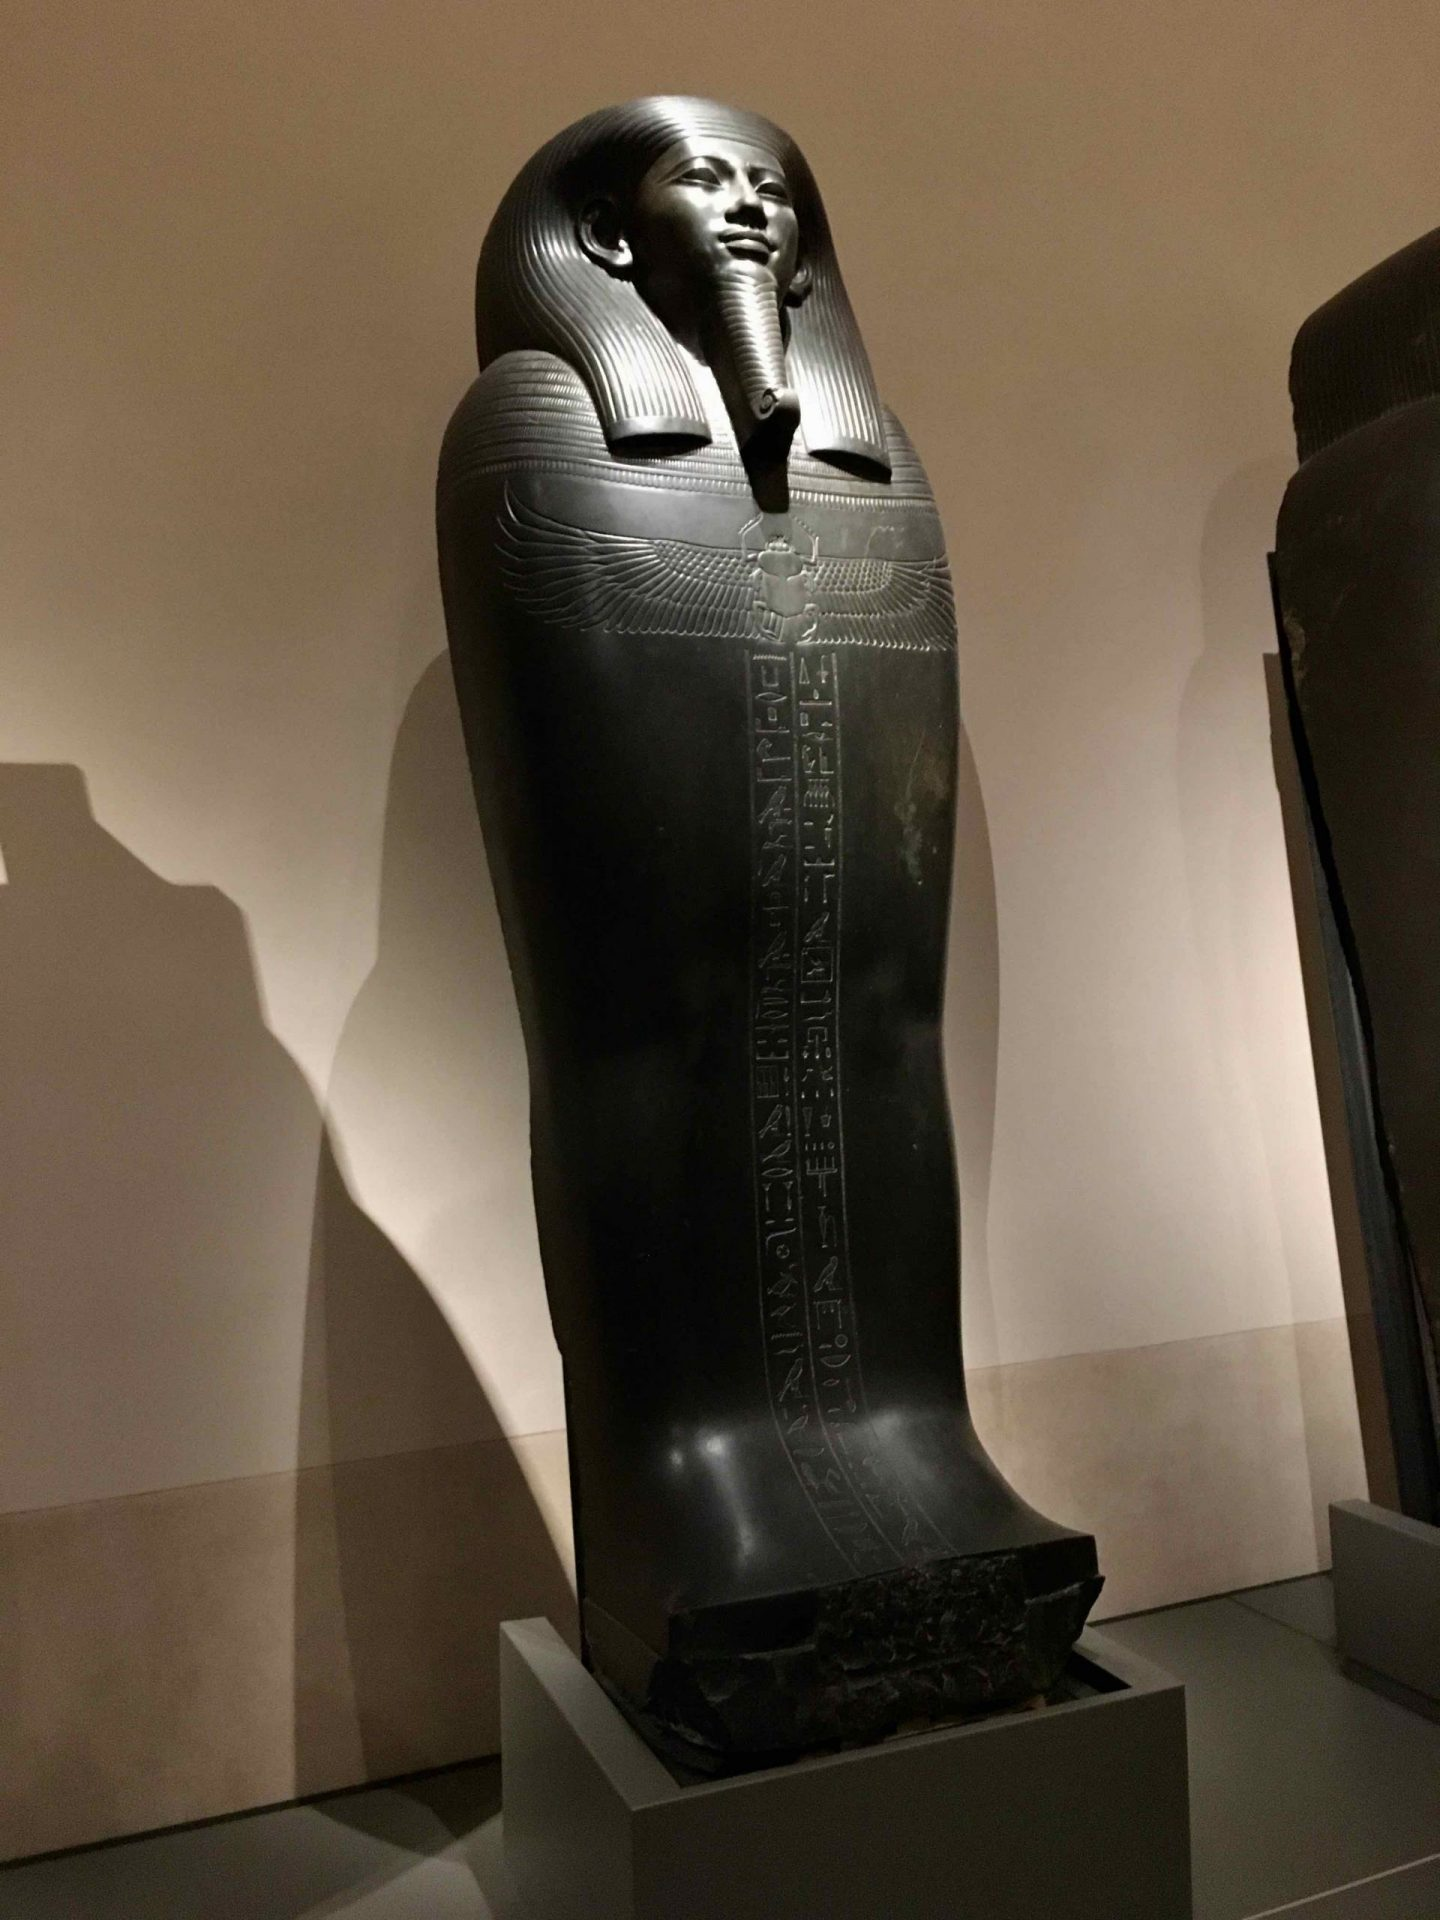 Egypt Museum Torino Italy | 7-day Torino Italy Travel Itinerary | The Spectacular Adventurer